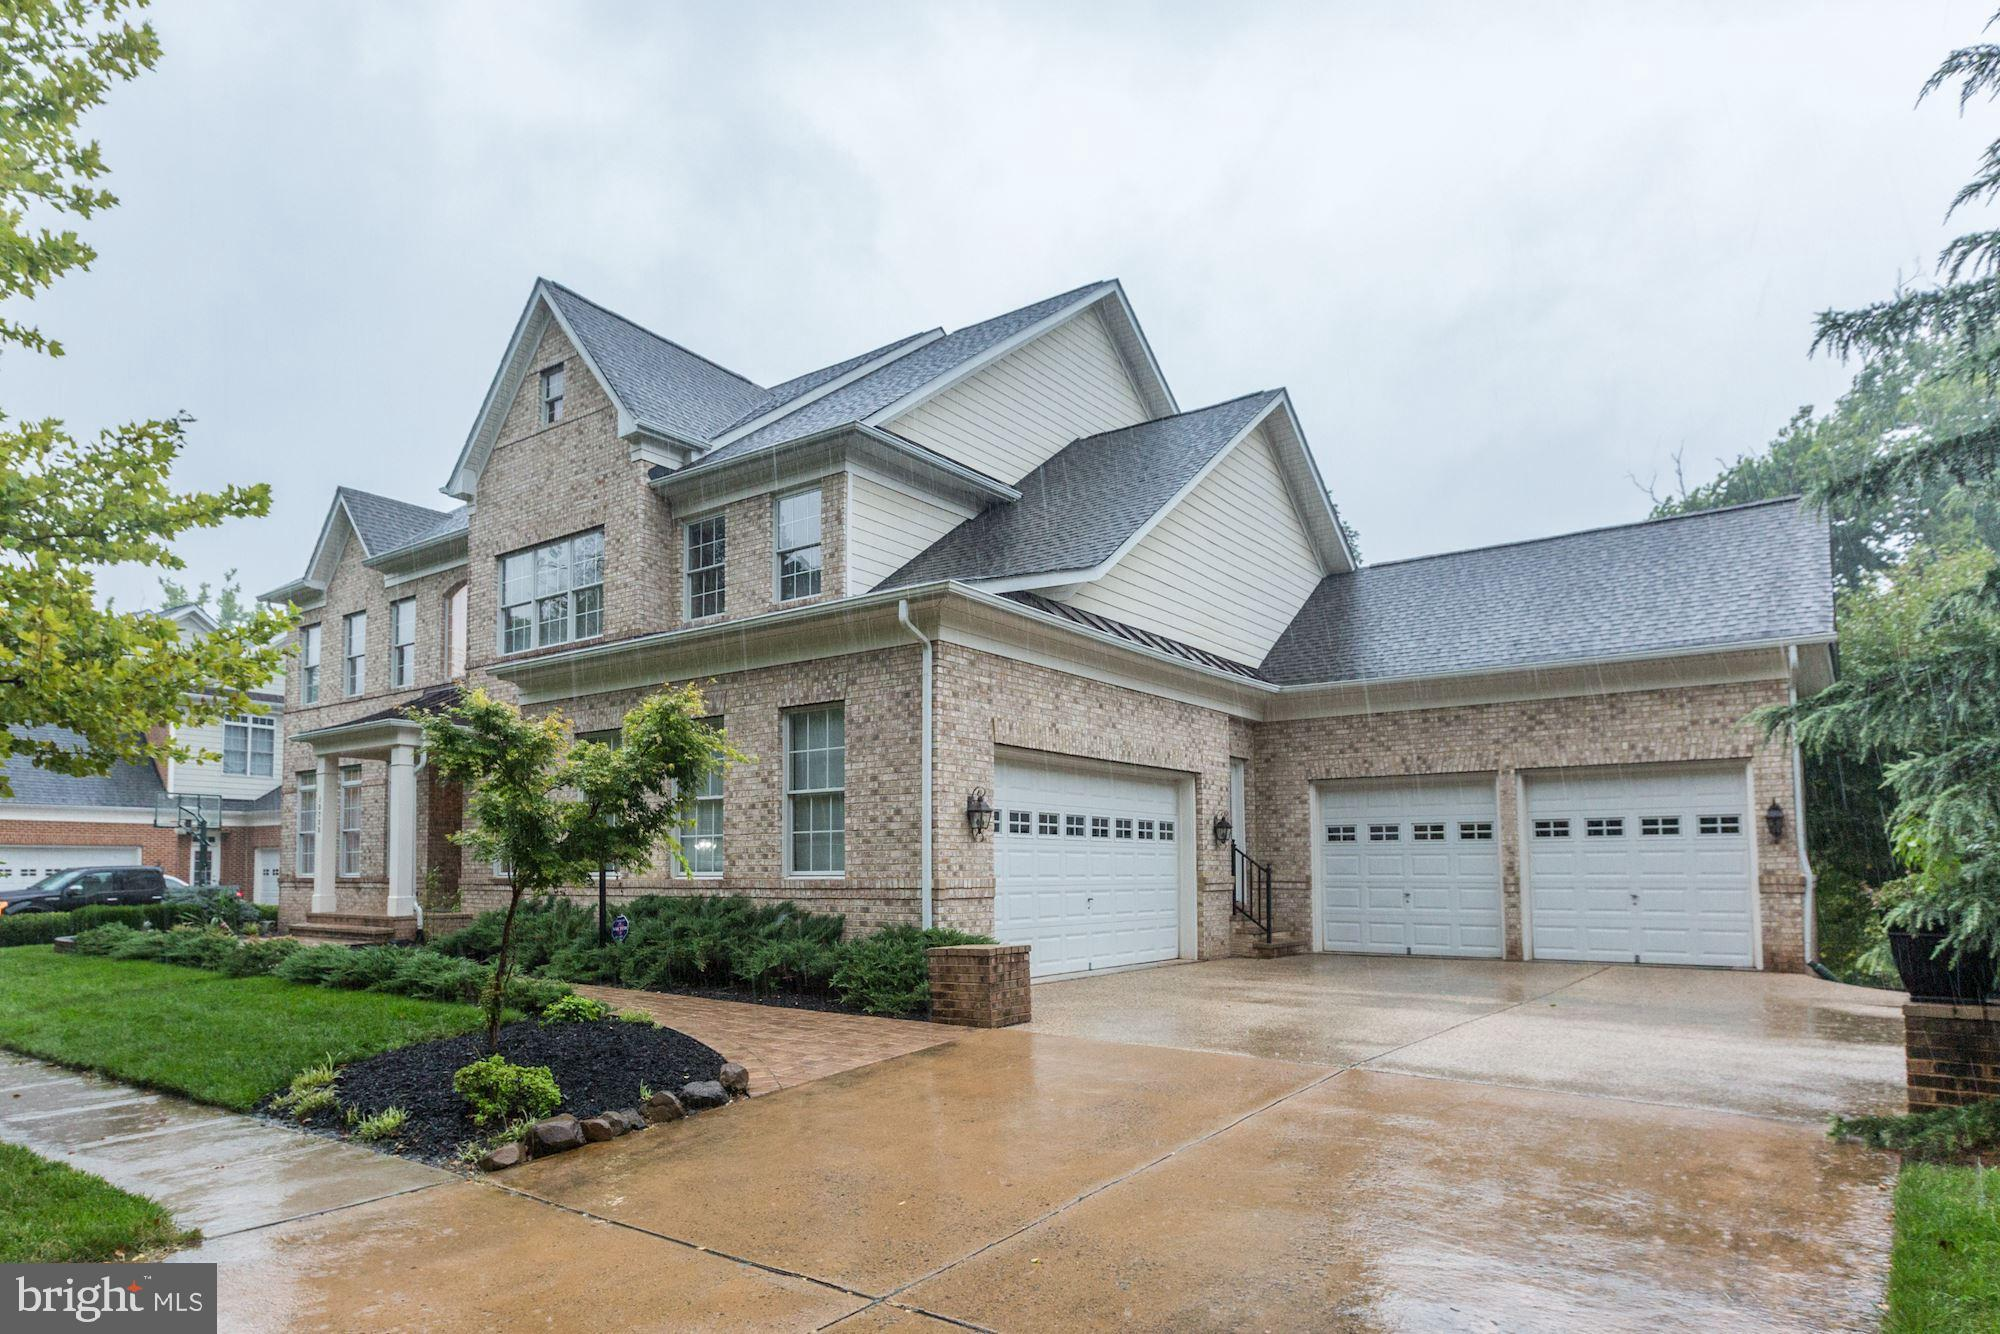 Overlooking the golf course, this magnificent home has over seven thousand square feet of luxurious